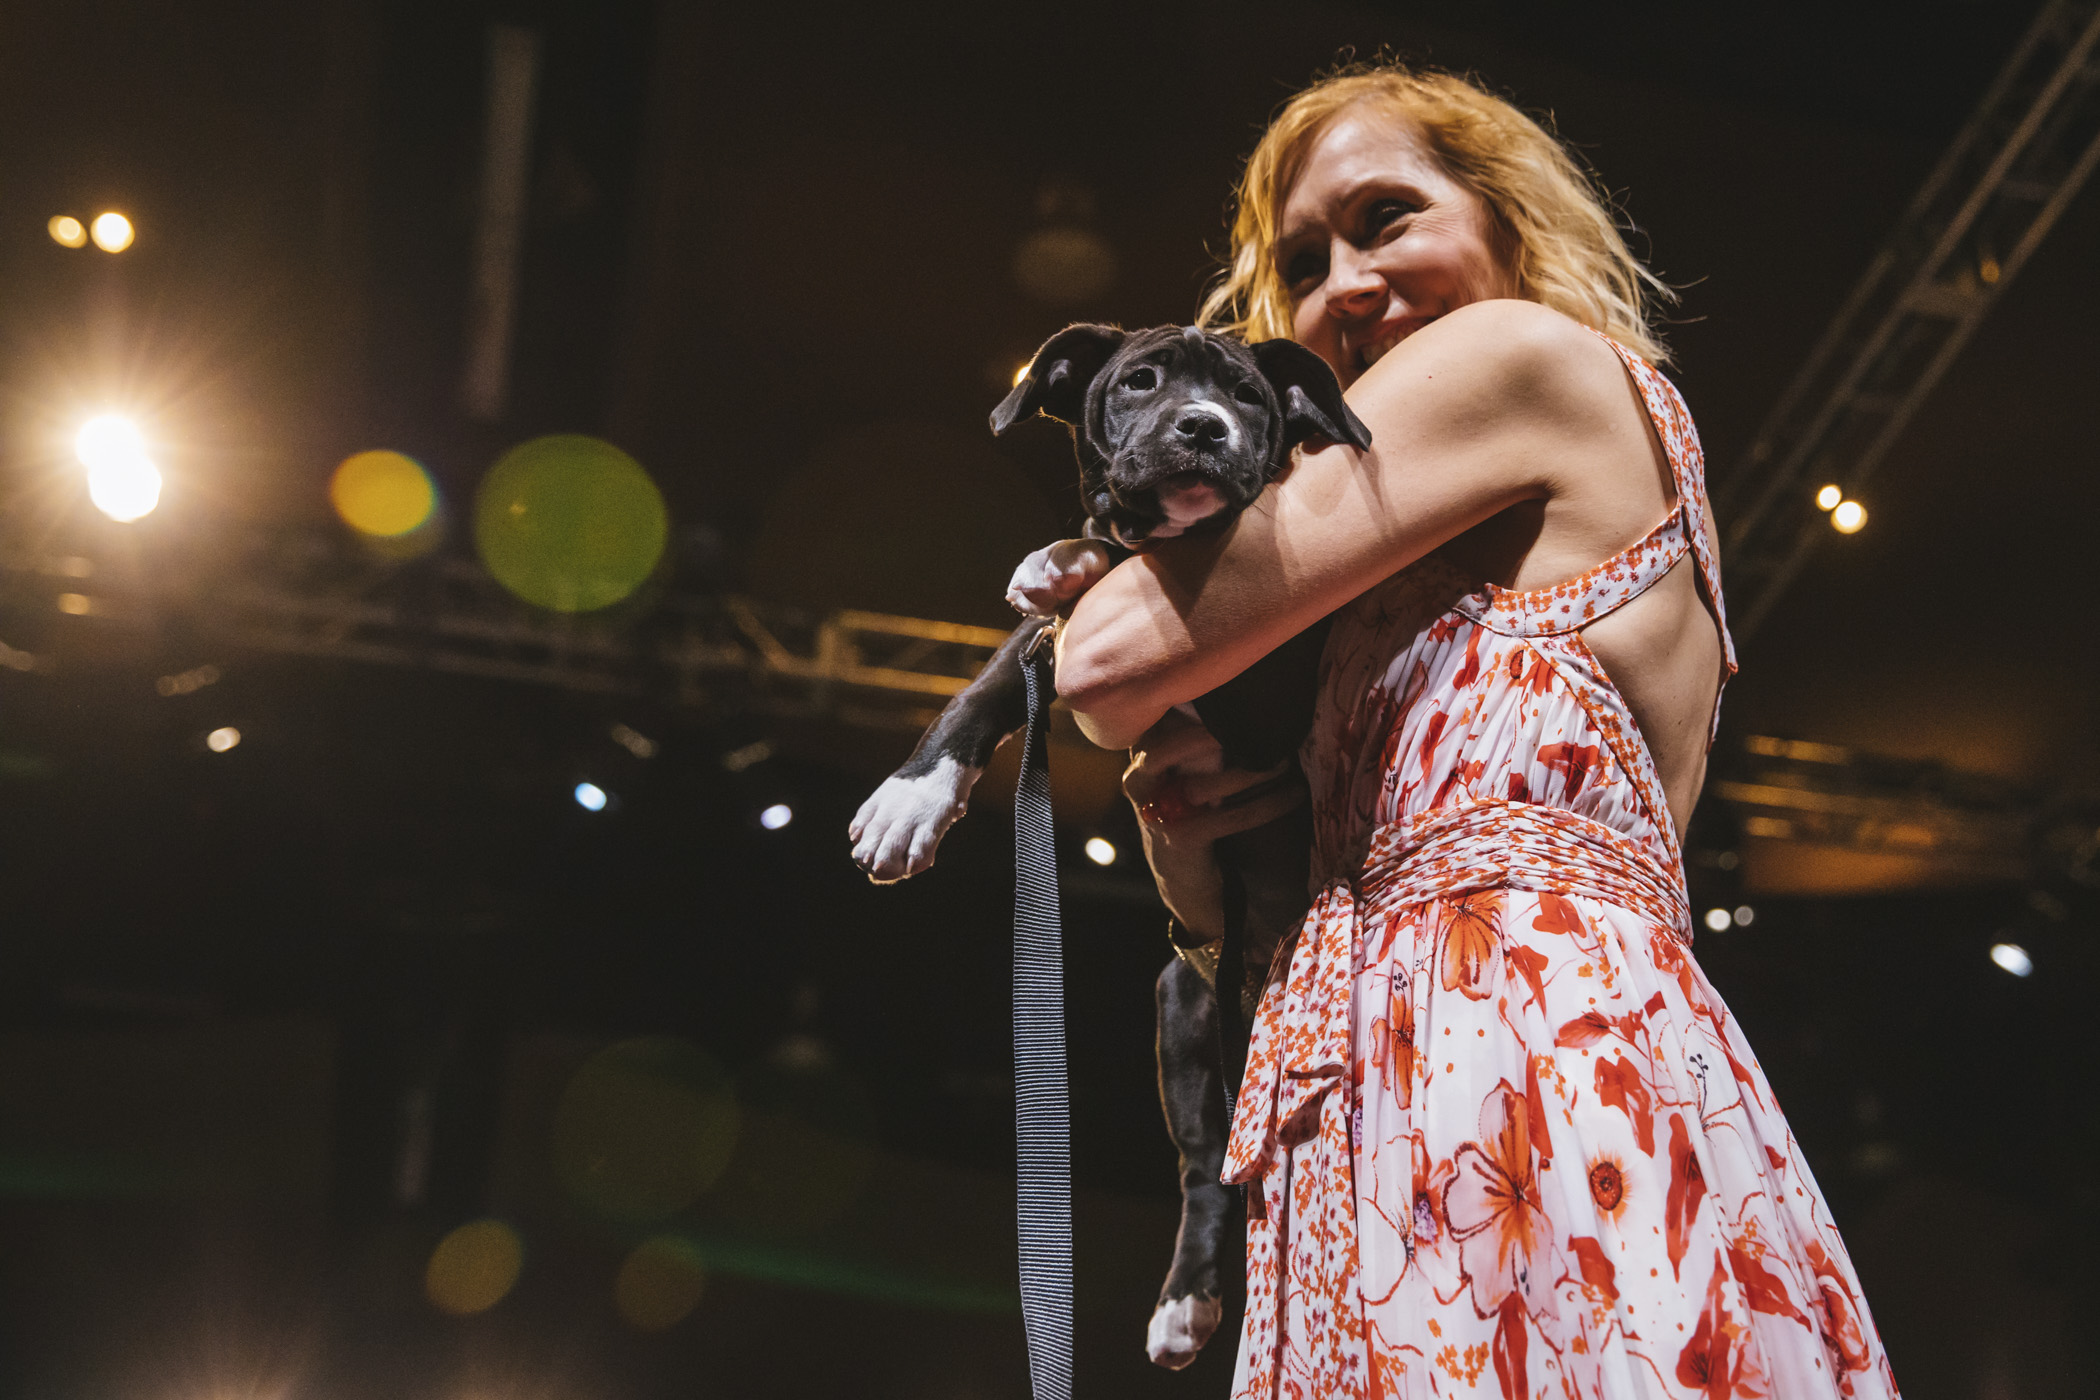 The 2019 annual Tuxes and Tails event raised more than $1.5M for Seattle Humane Society through donations, auctions, raffles and more this weekend (May 11, 2019). Local celebs walked adoptable cats and dogs down the runway at the Meydenbaur Center in Bellevue to a ballroom filled with animal people. All proceeds benefit animals in SHS's care. (Image: Sunita Martini / Seattle Refined)